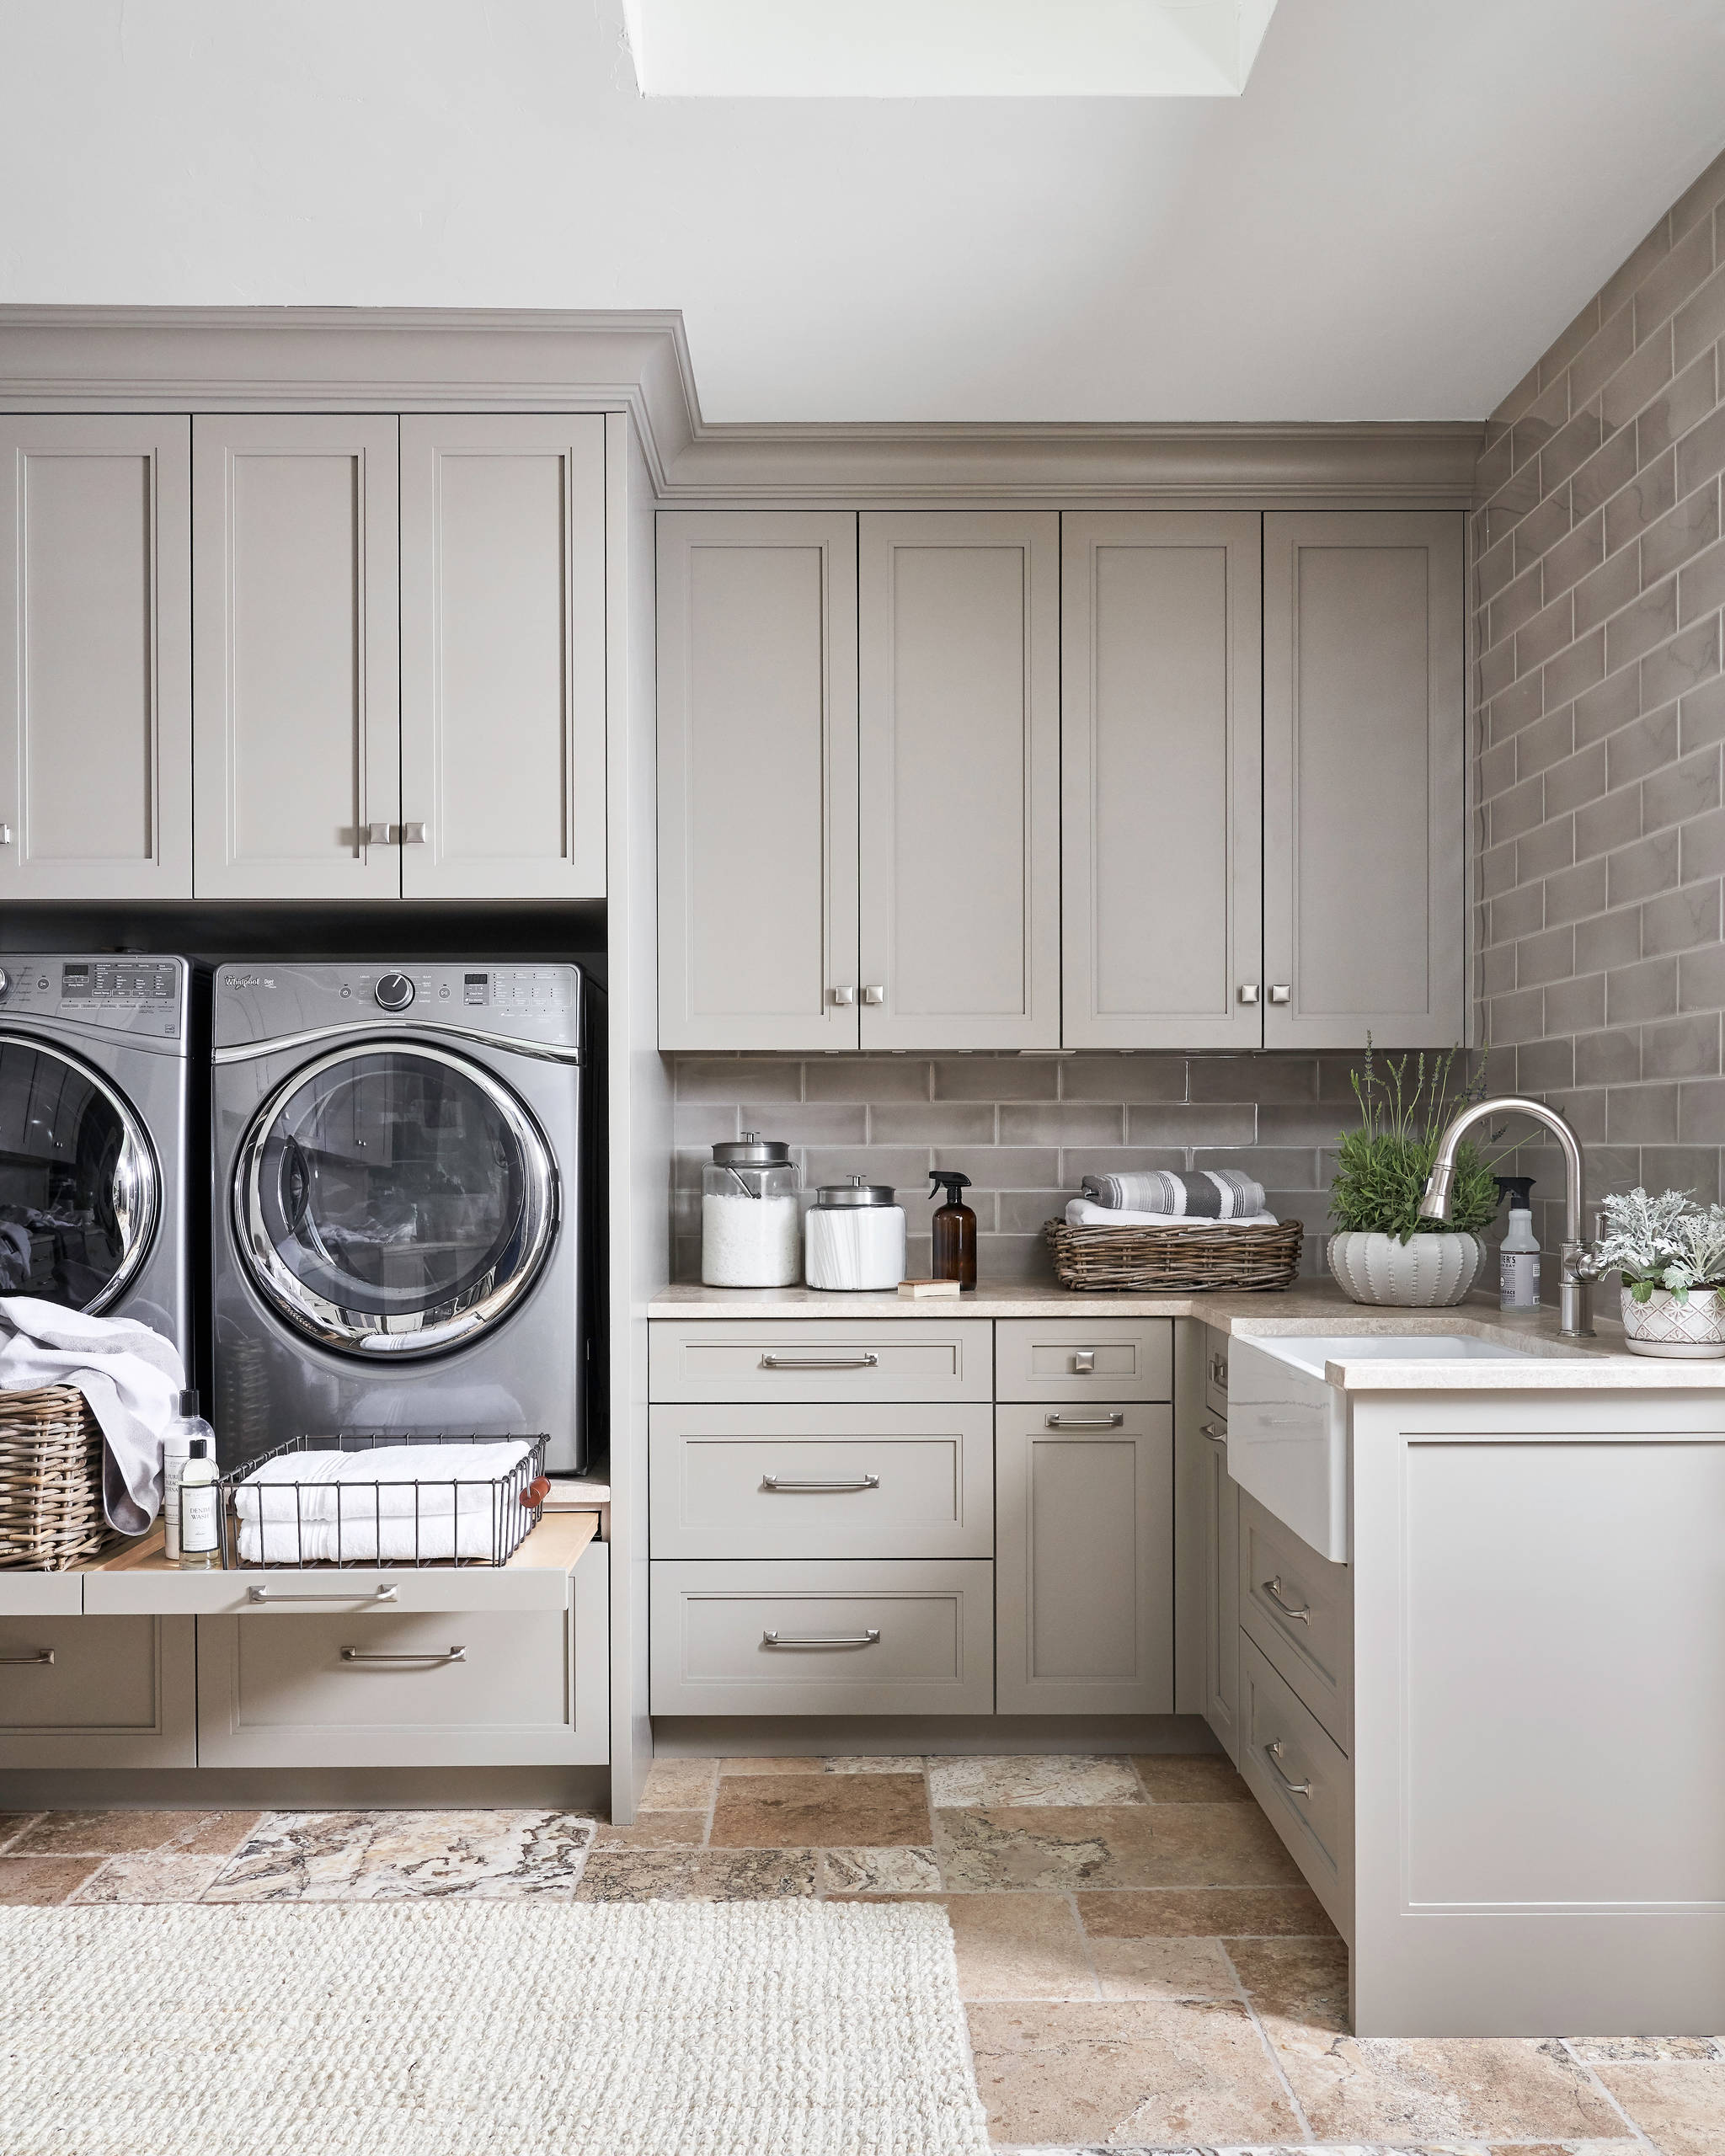 28 Beautiful Laundry Room Pictures & Ideas - September, 28  Houzz